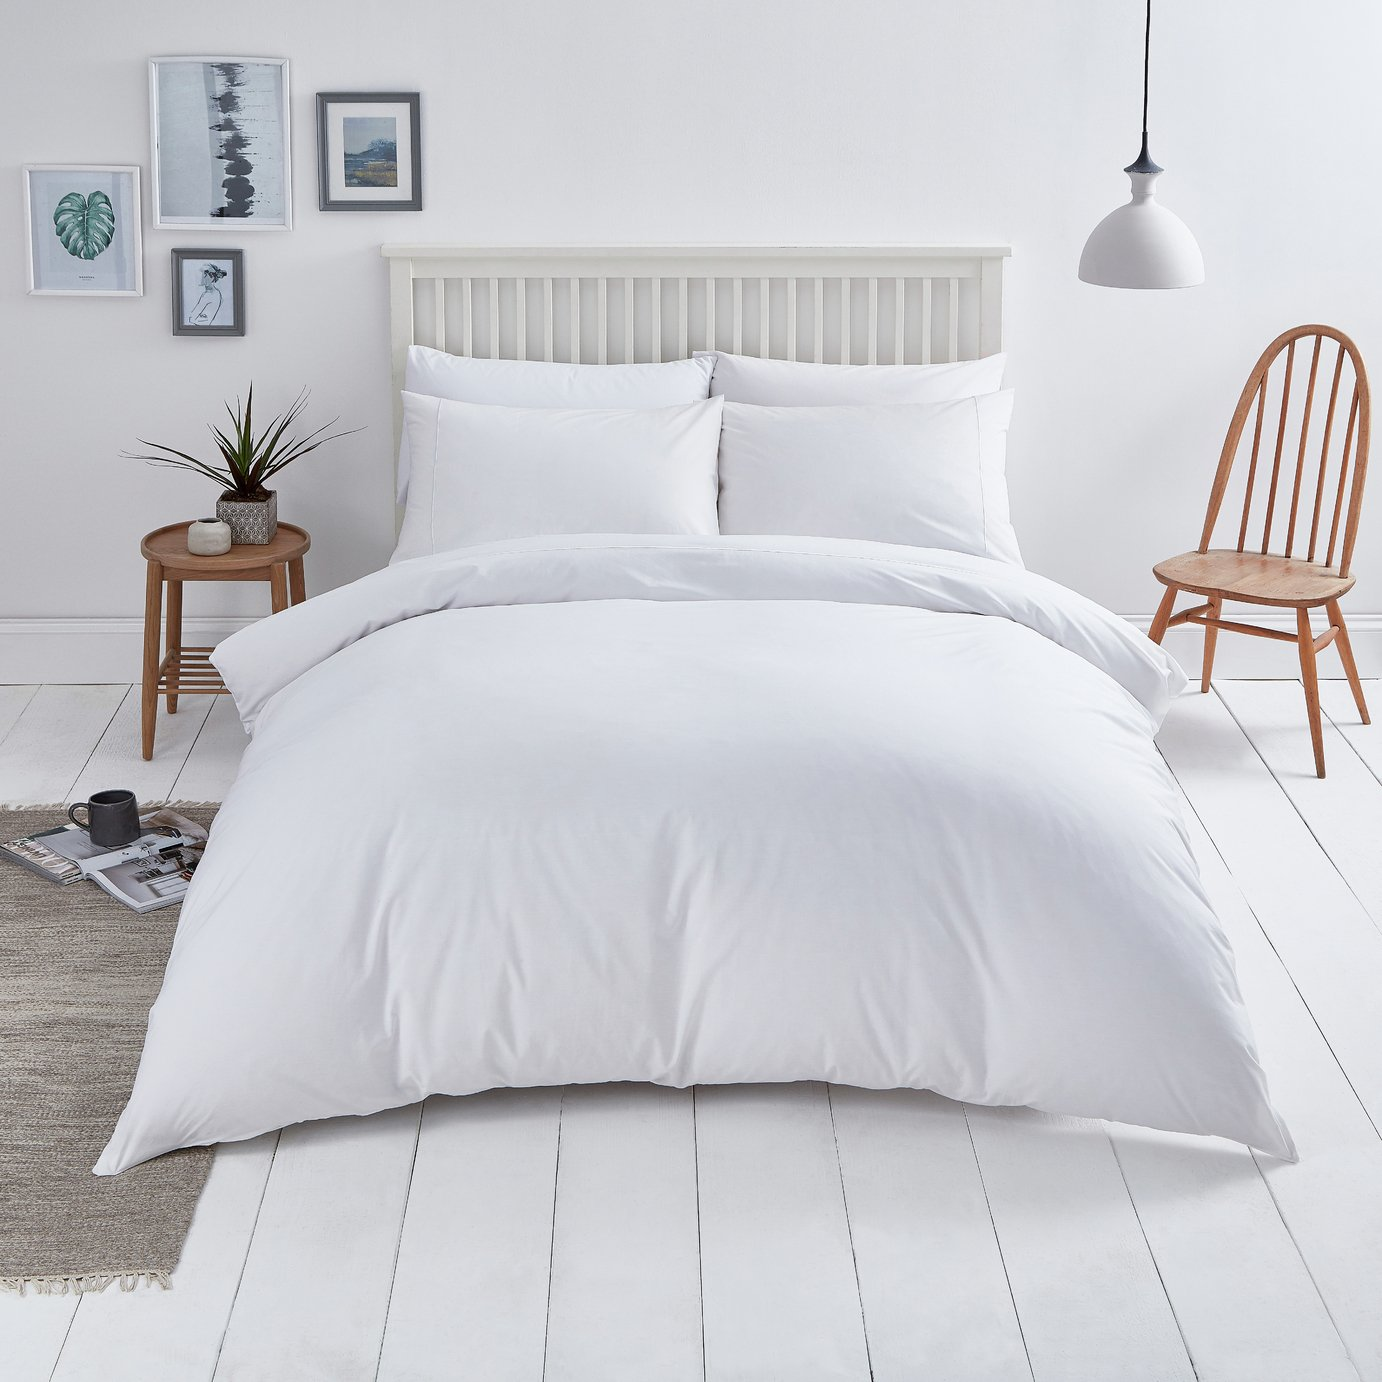 Sainsbury's Home Cool Cotton White Bedding Set - Double